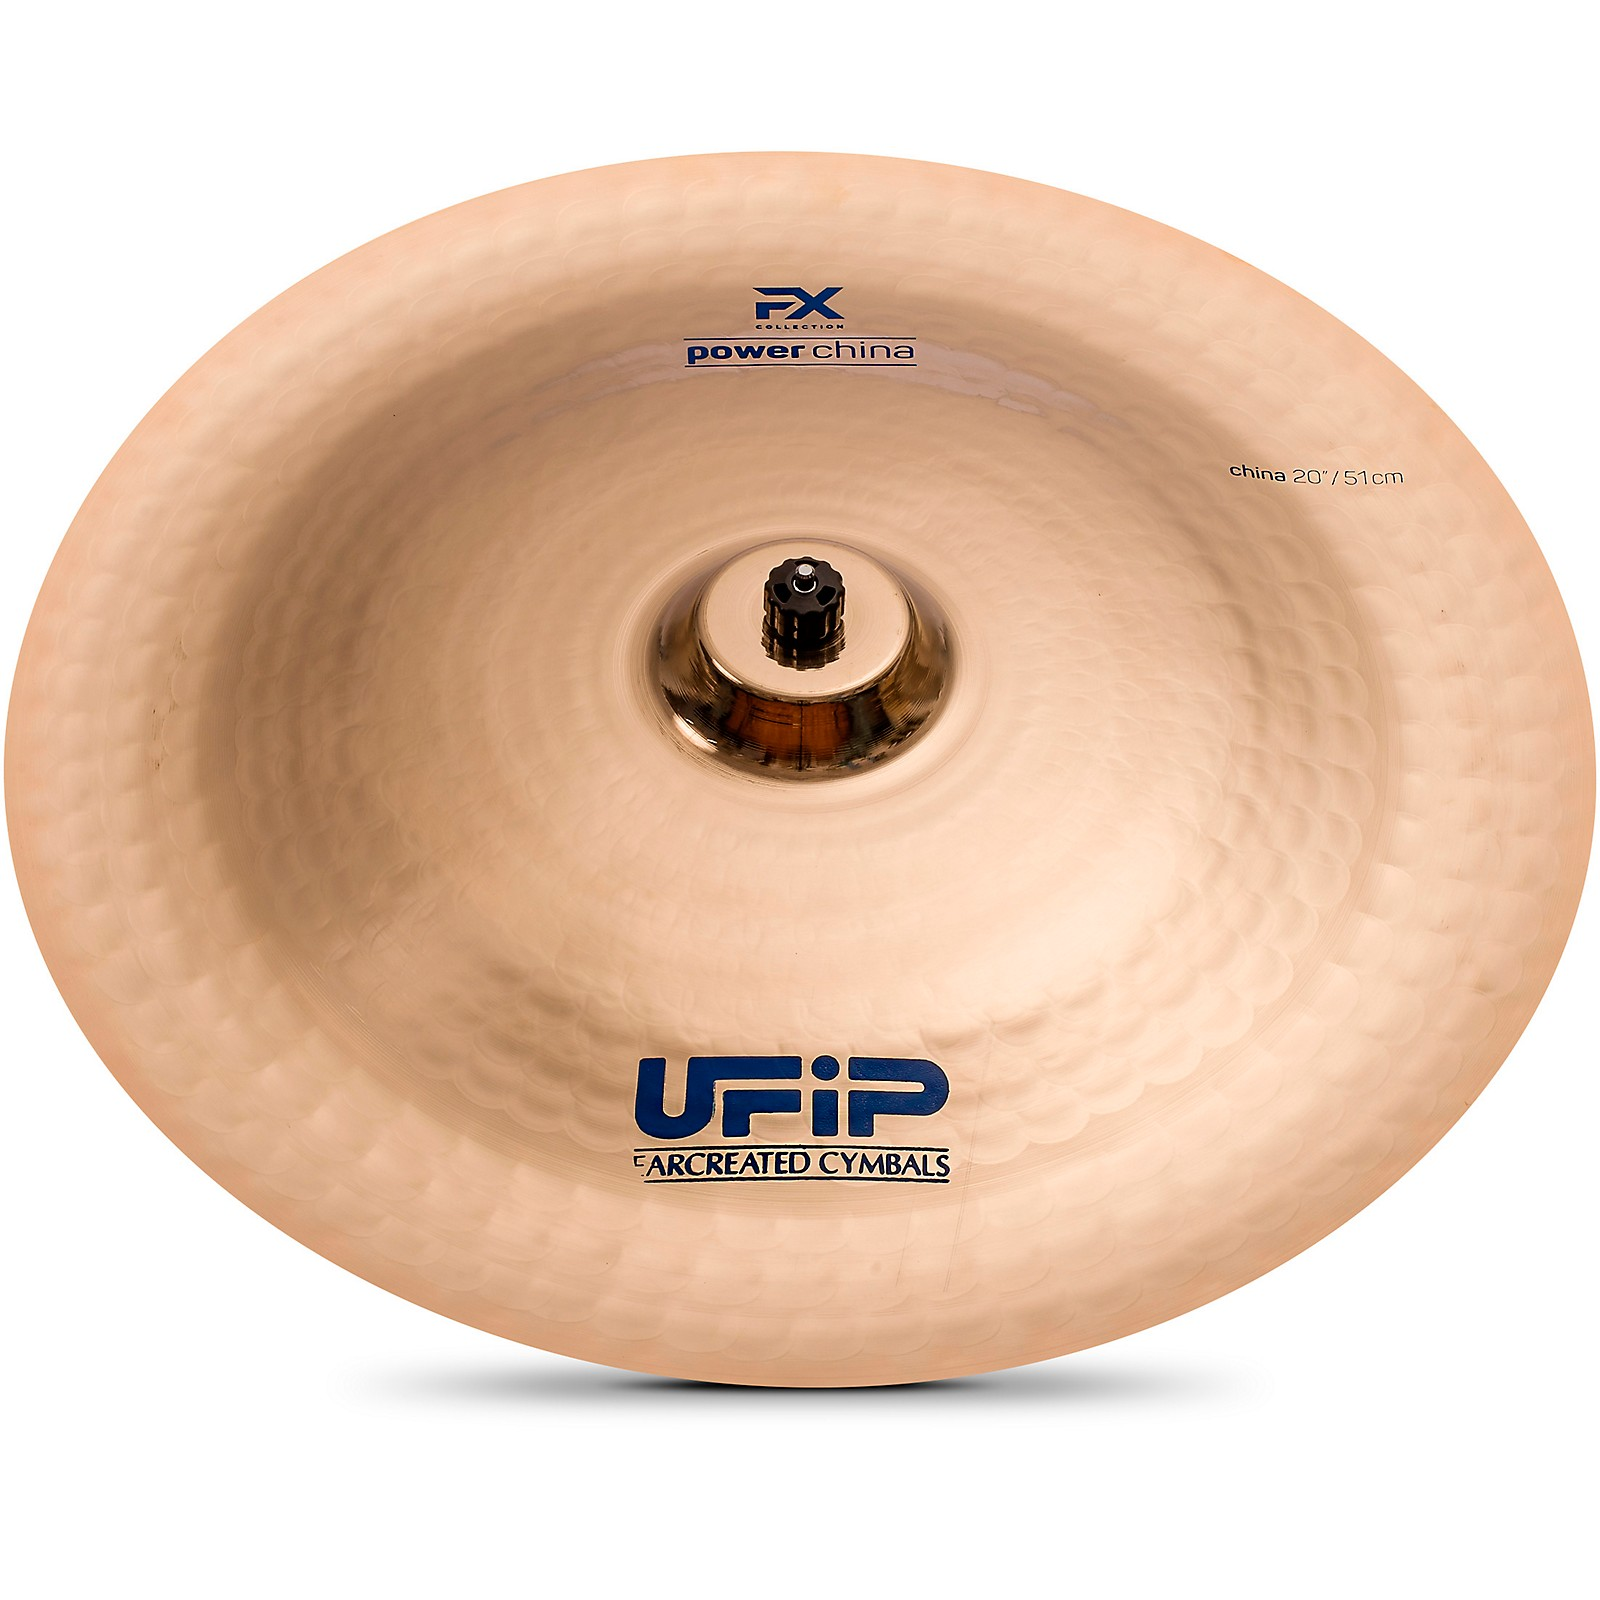 UFIP Effects Series Power China Cymbal